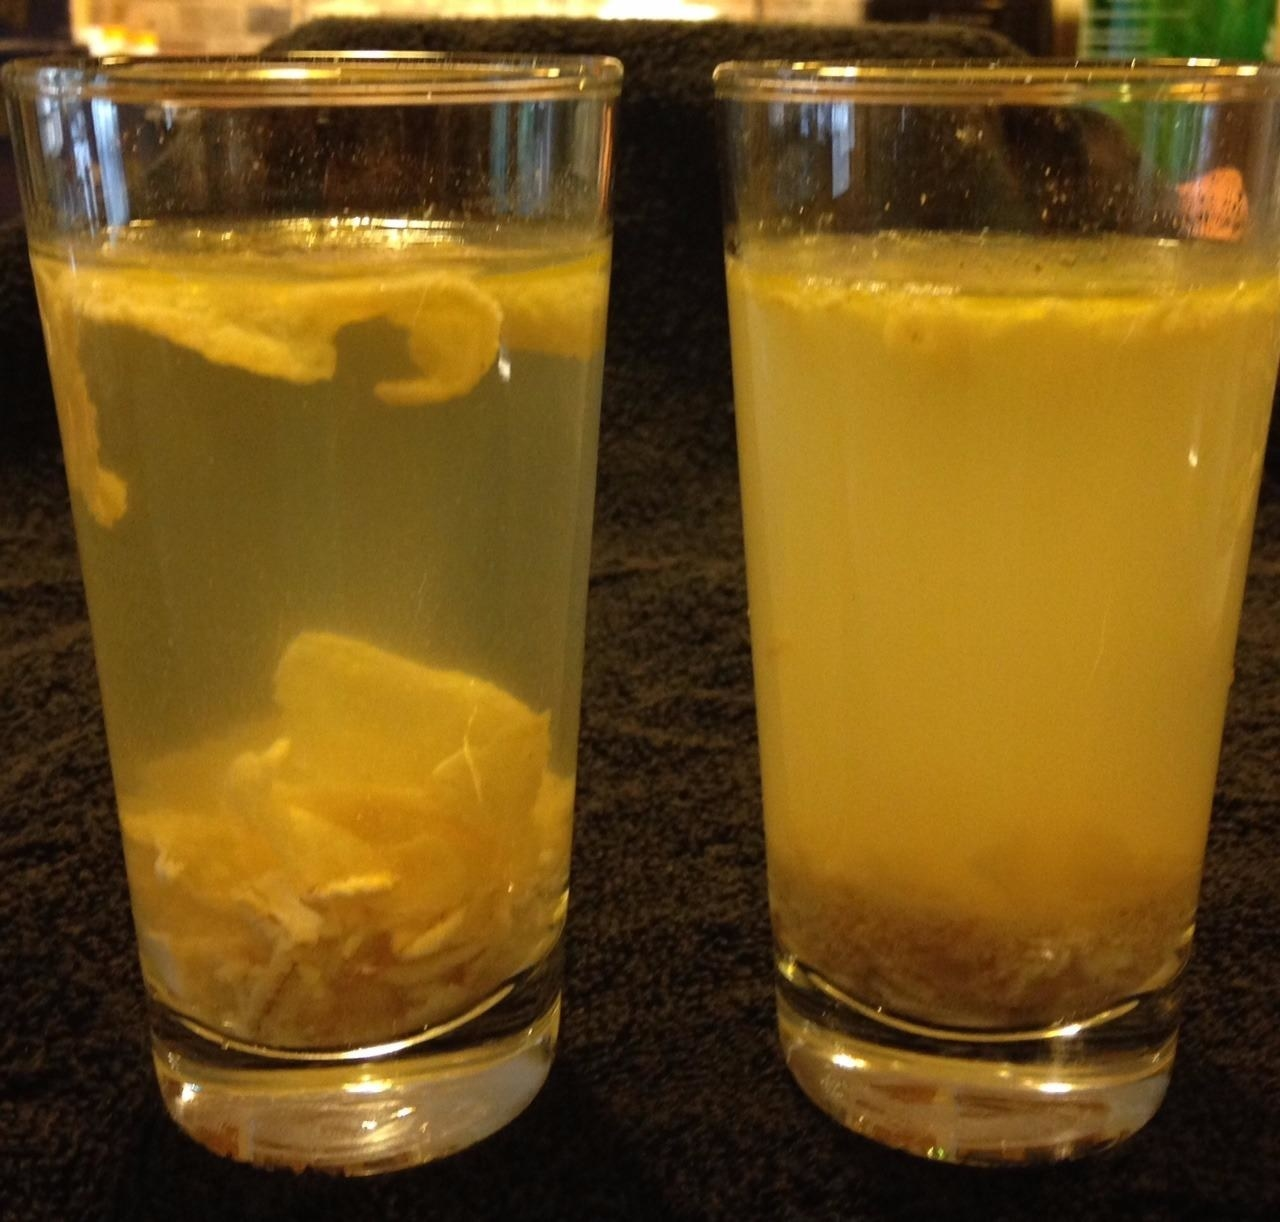 left: lots of solid matter in yellow liquid in glass right: more powdery like matter in same yellow color liquid in glass